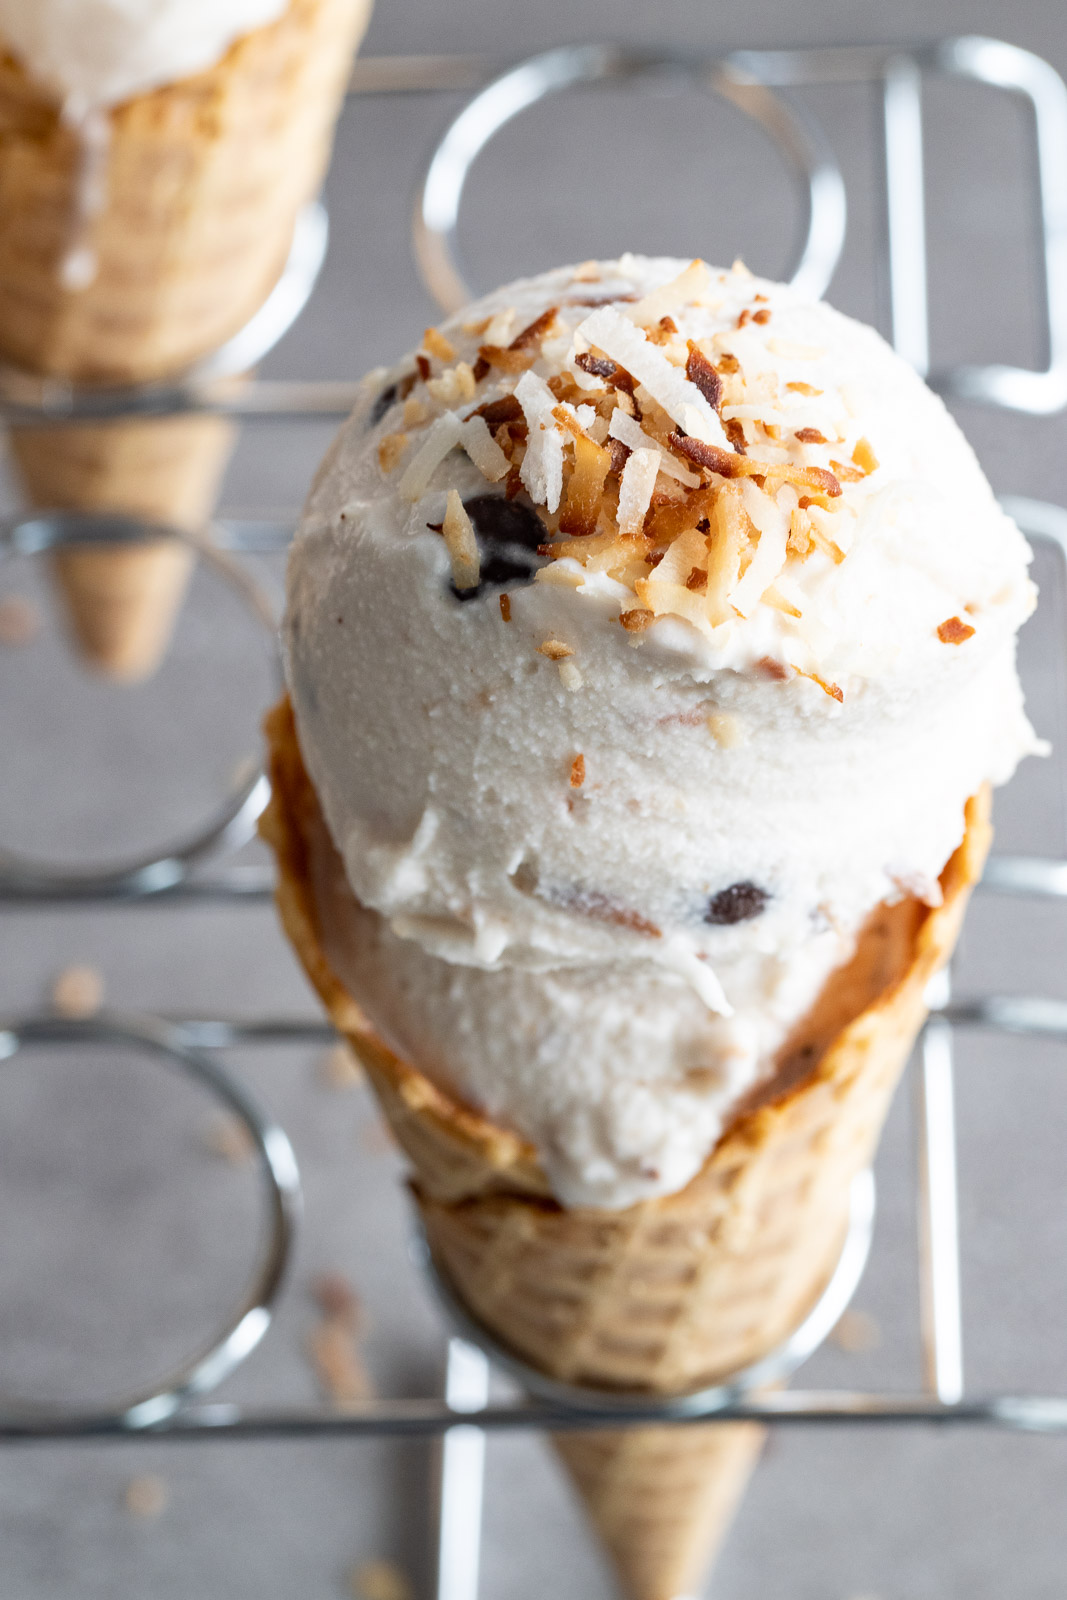 toasted coconut on dairy-free ice cream.